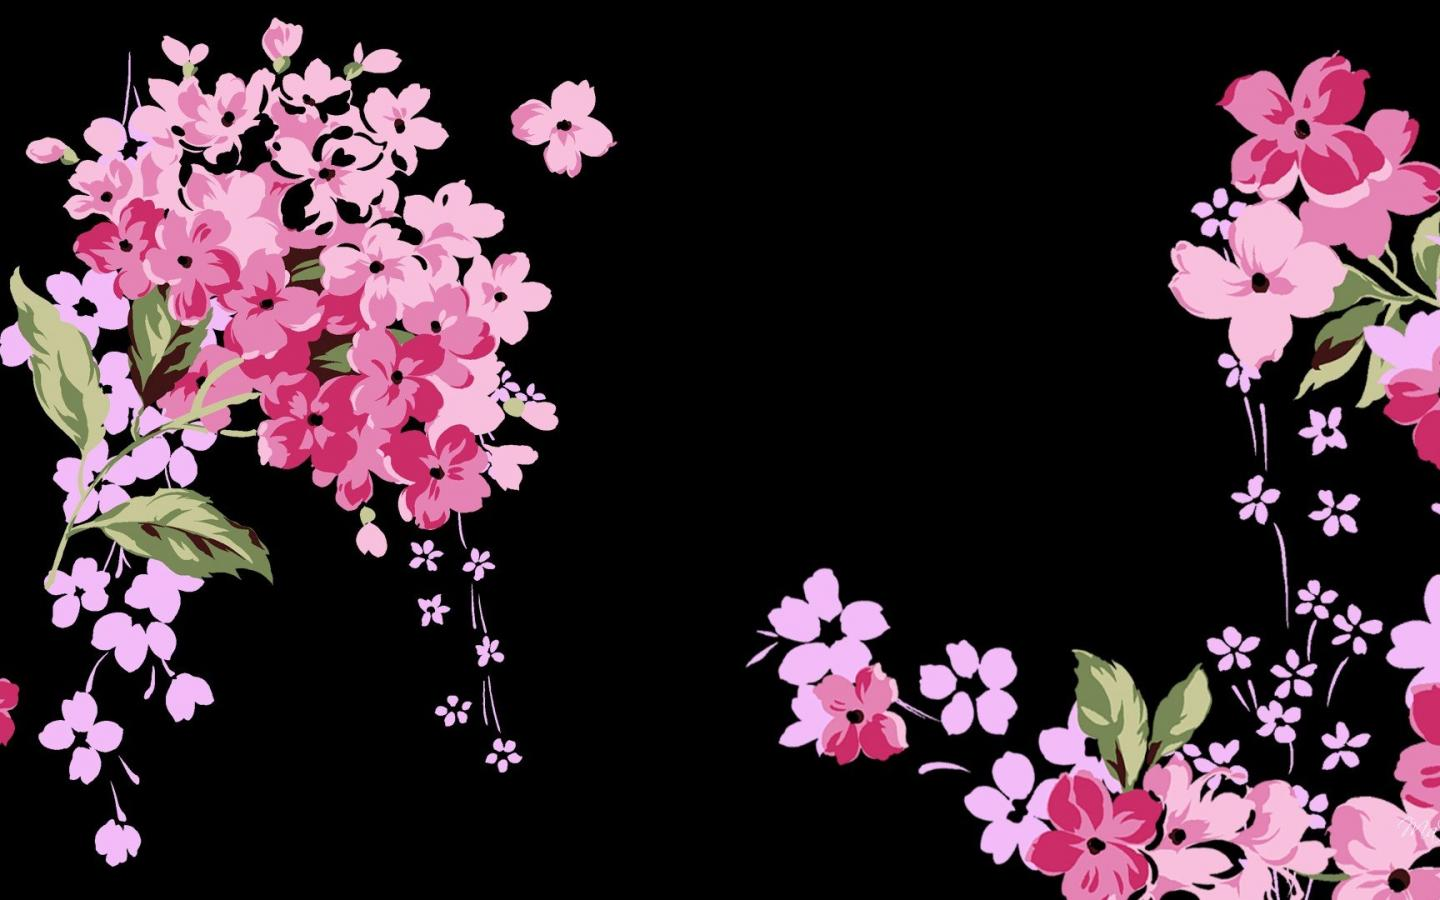 Black And Pink Floral Wallpaper Hd Wallpapers